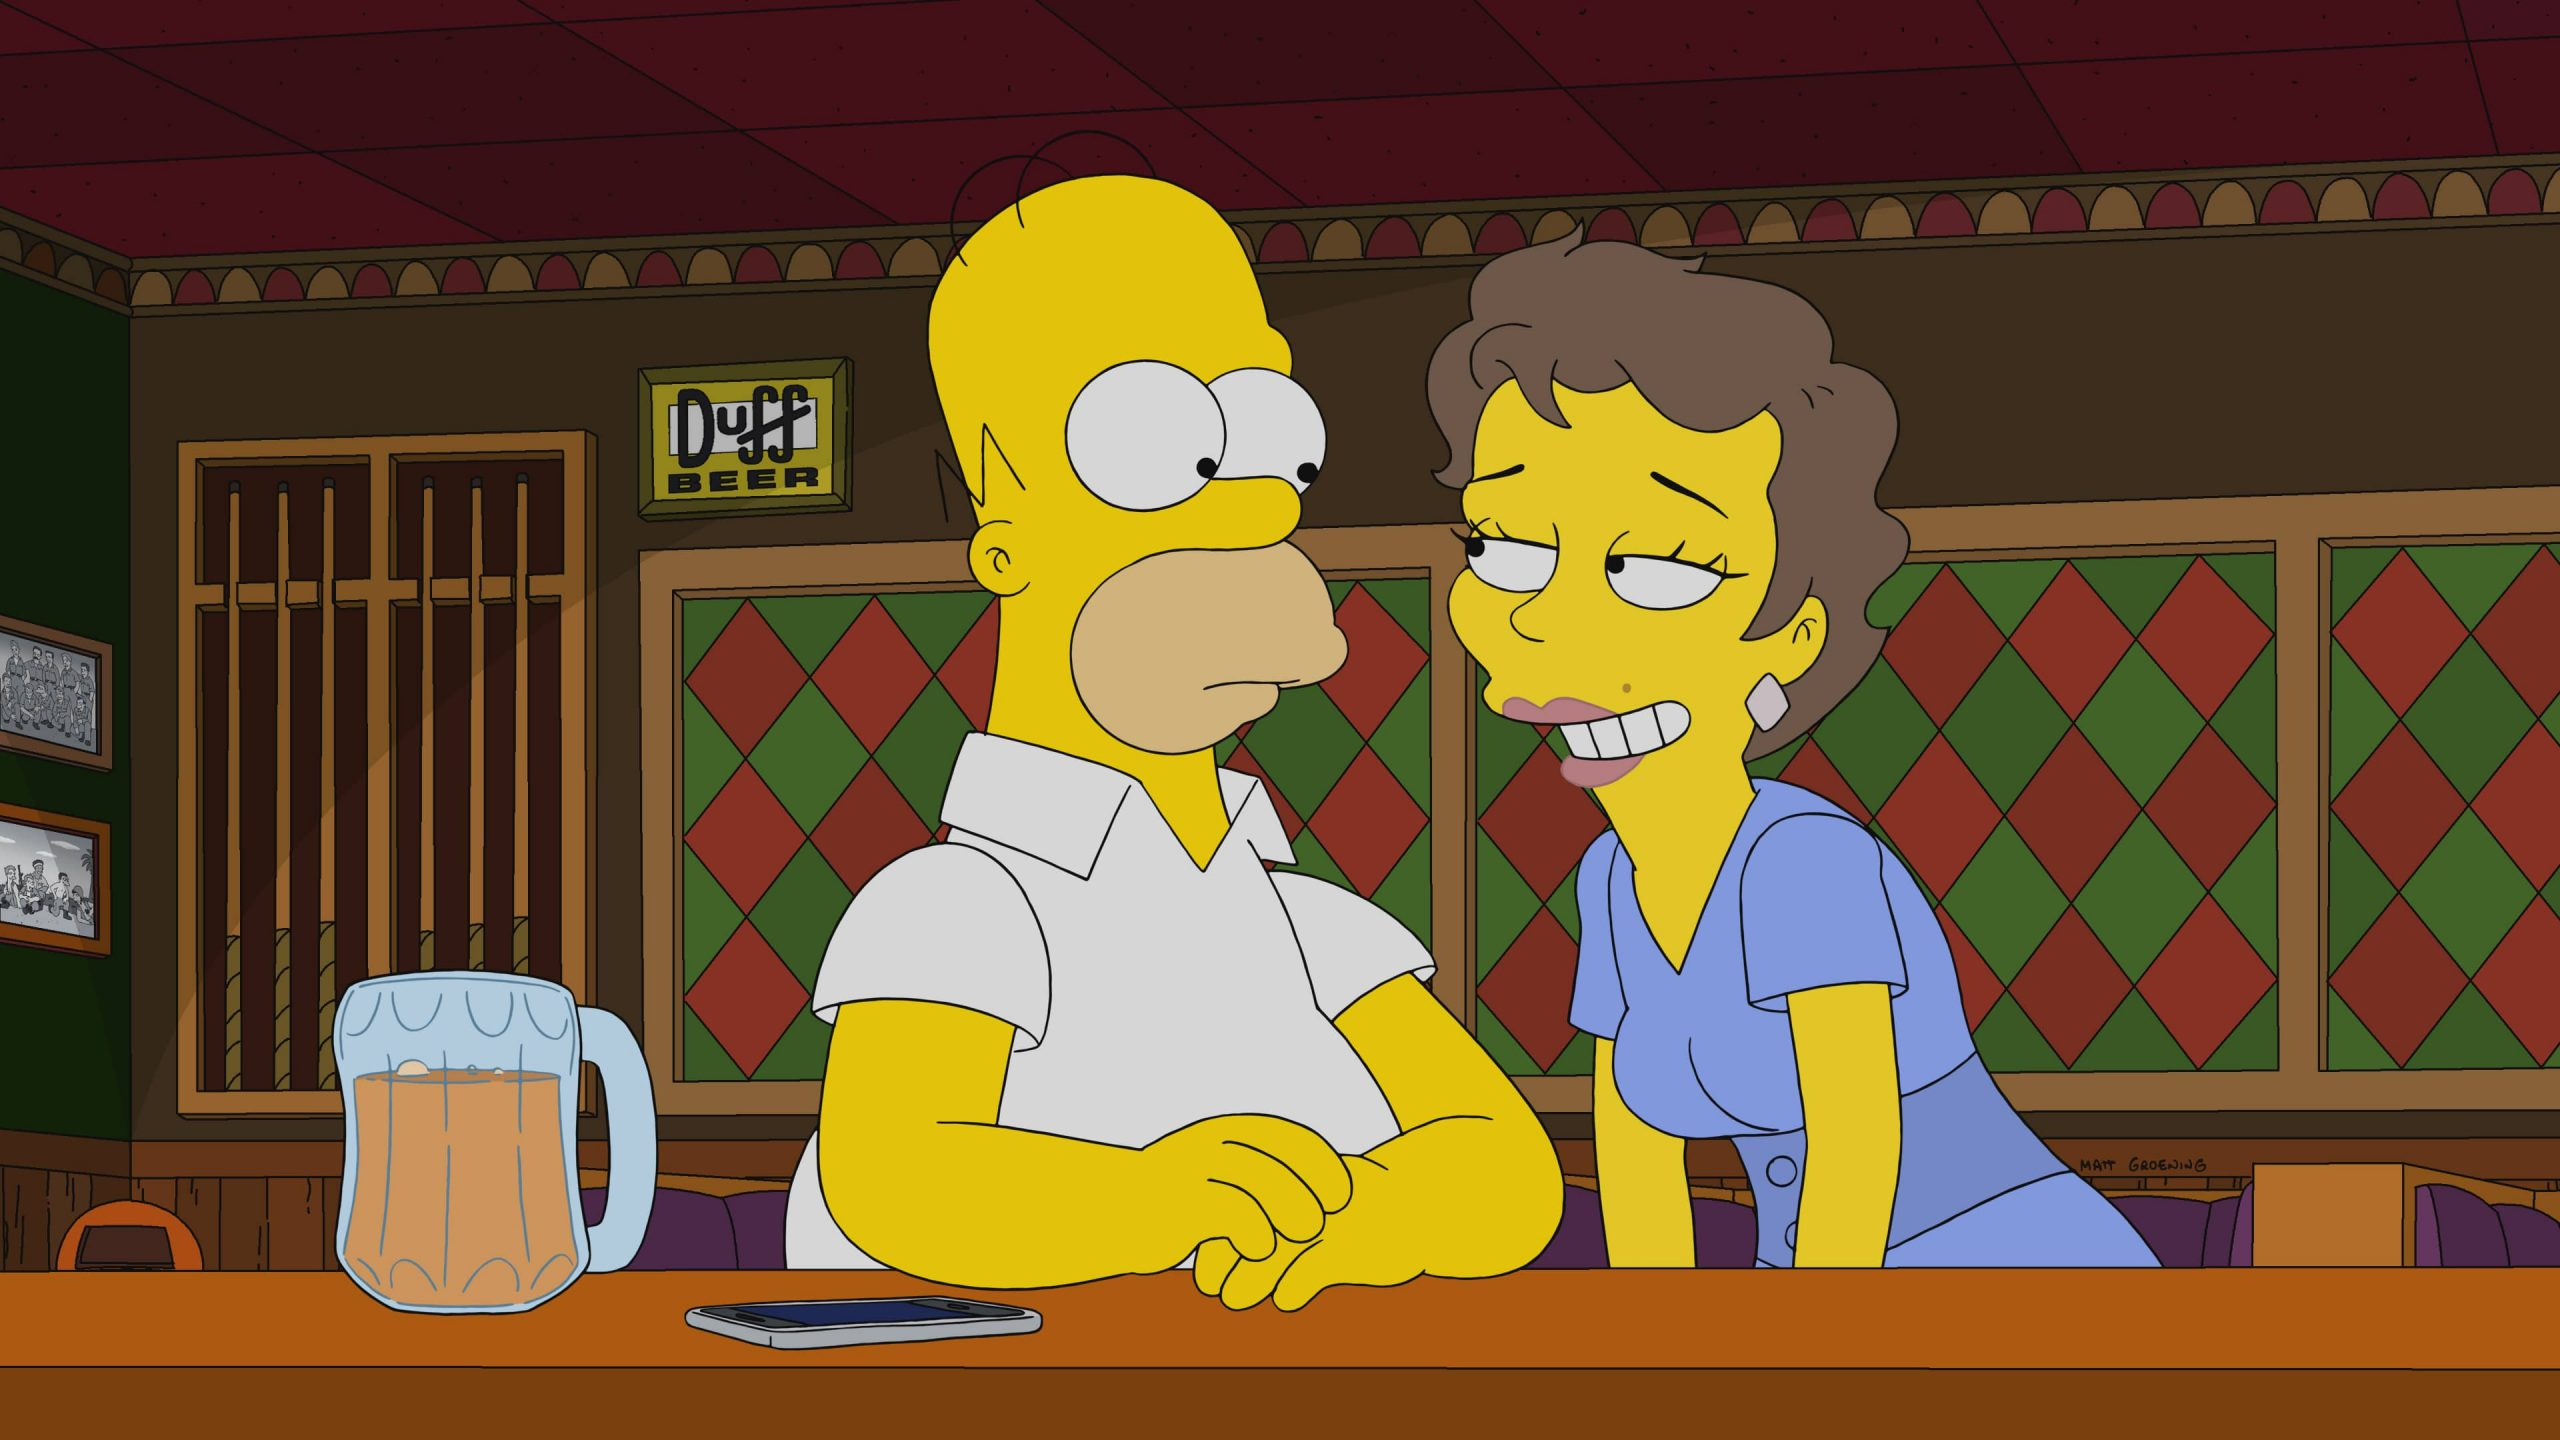 """THE SIMPSONS: When Marge and the kids take a seaside vacation, Homer is unwittingly tempted by a British femme fatale in the """"The 7 Beer Itch"""" episode of THE SIMPSONS airing Sunday, Nov. 8 (8:00-8:31 PM ET/PT) on FOX. Guest voice Olivia Colman. THE SIMPSONS © 2020 by Twentieth Century Fox Film Corporation."""